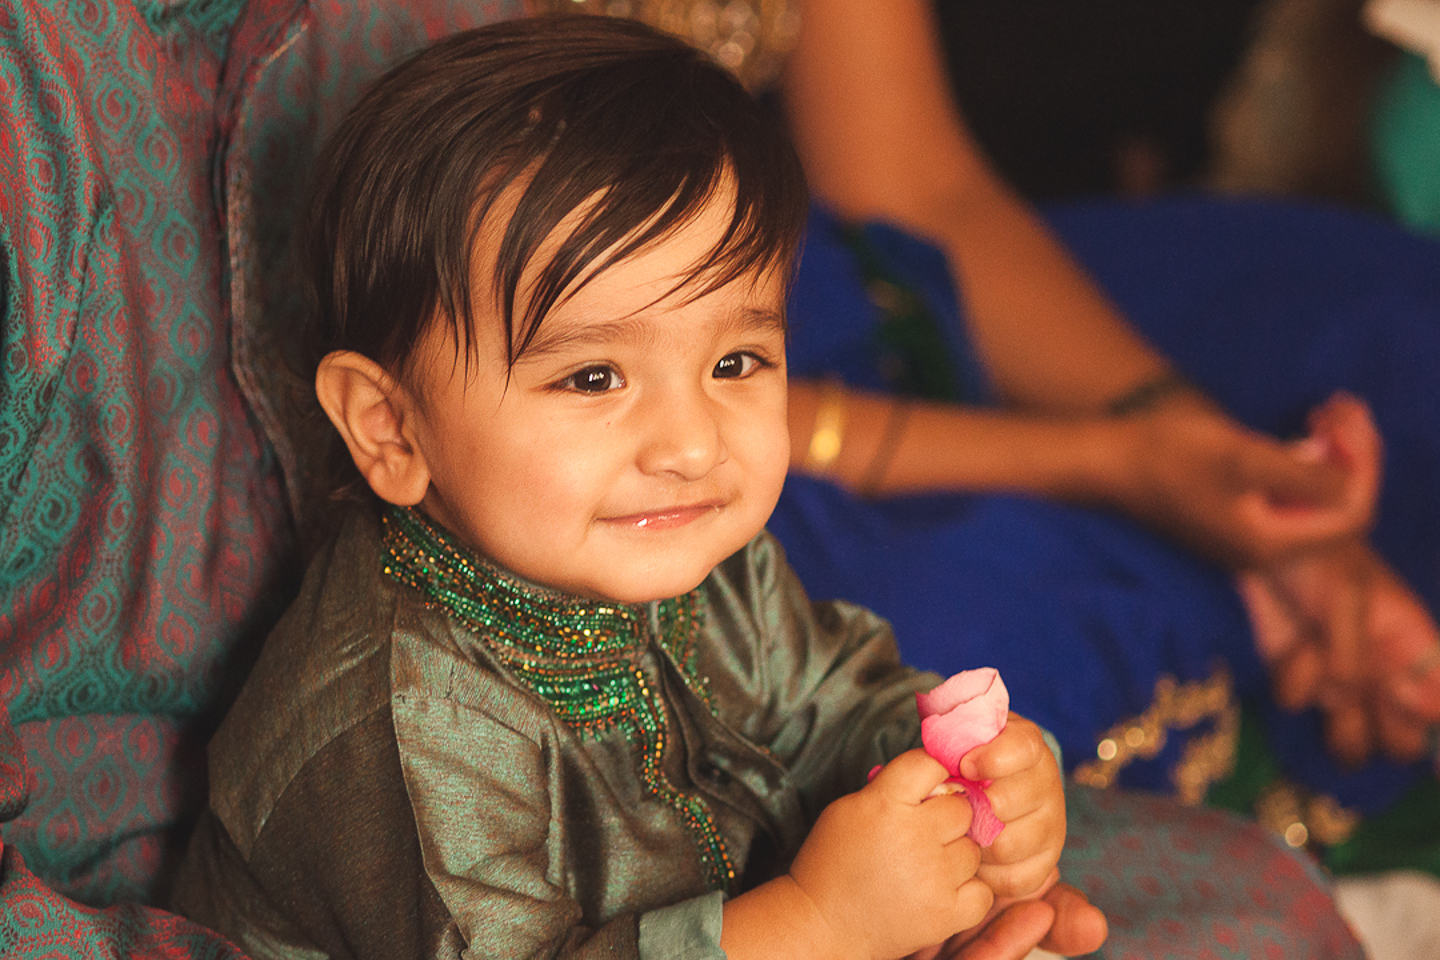 mithun-first-birthday-party-event-photography-long-island-ny-first-birthday-0036.jpg